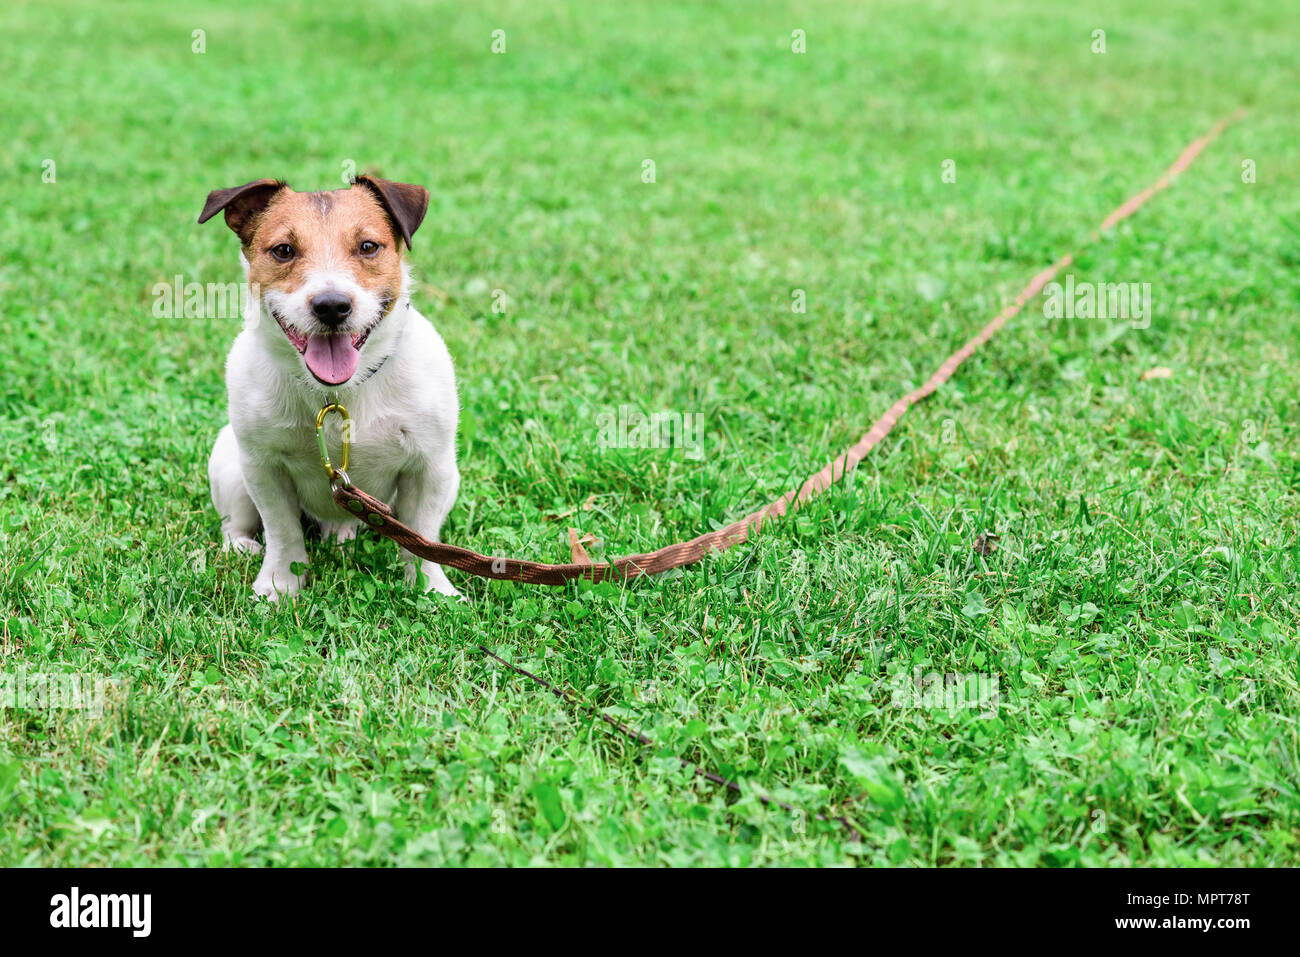 Obedient dog and long-line training leash on green grass background - Stock Image